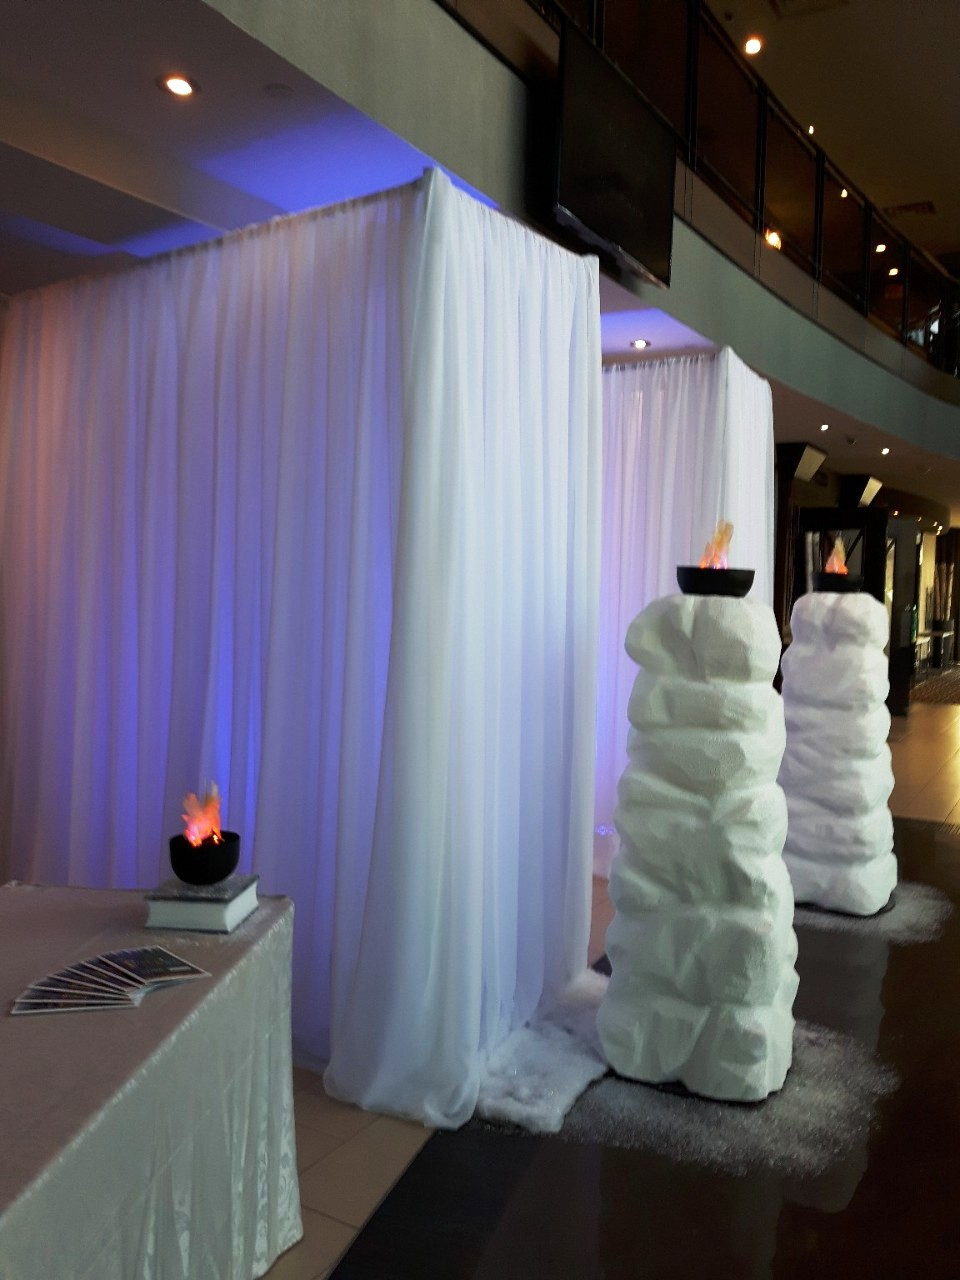 Fire & Ice Gala Entranceway, Ajax Convention Centre